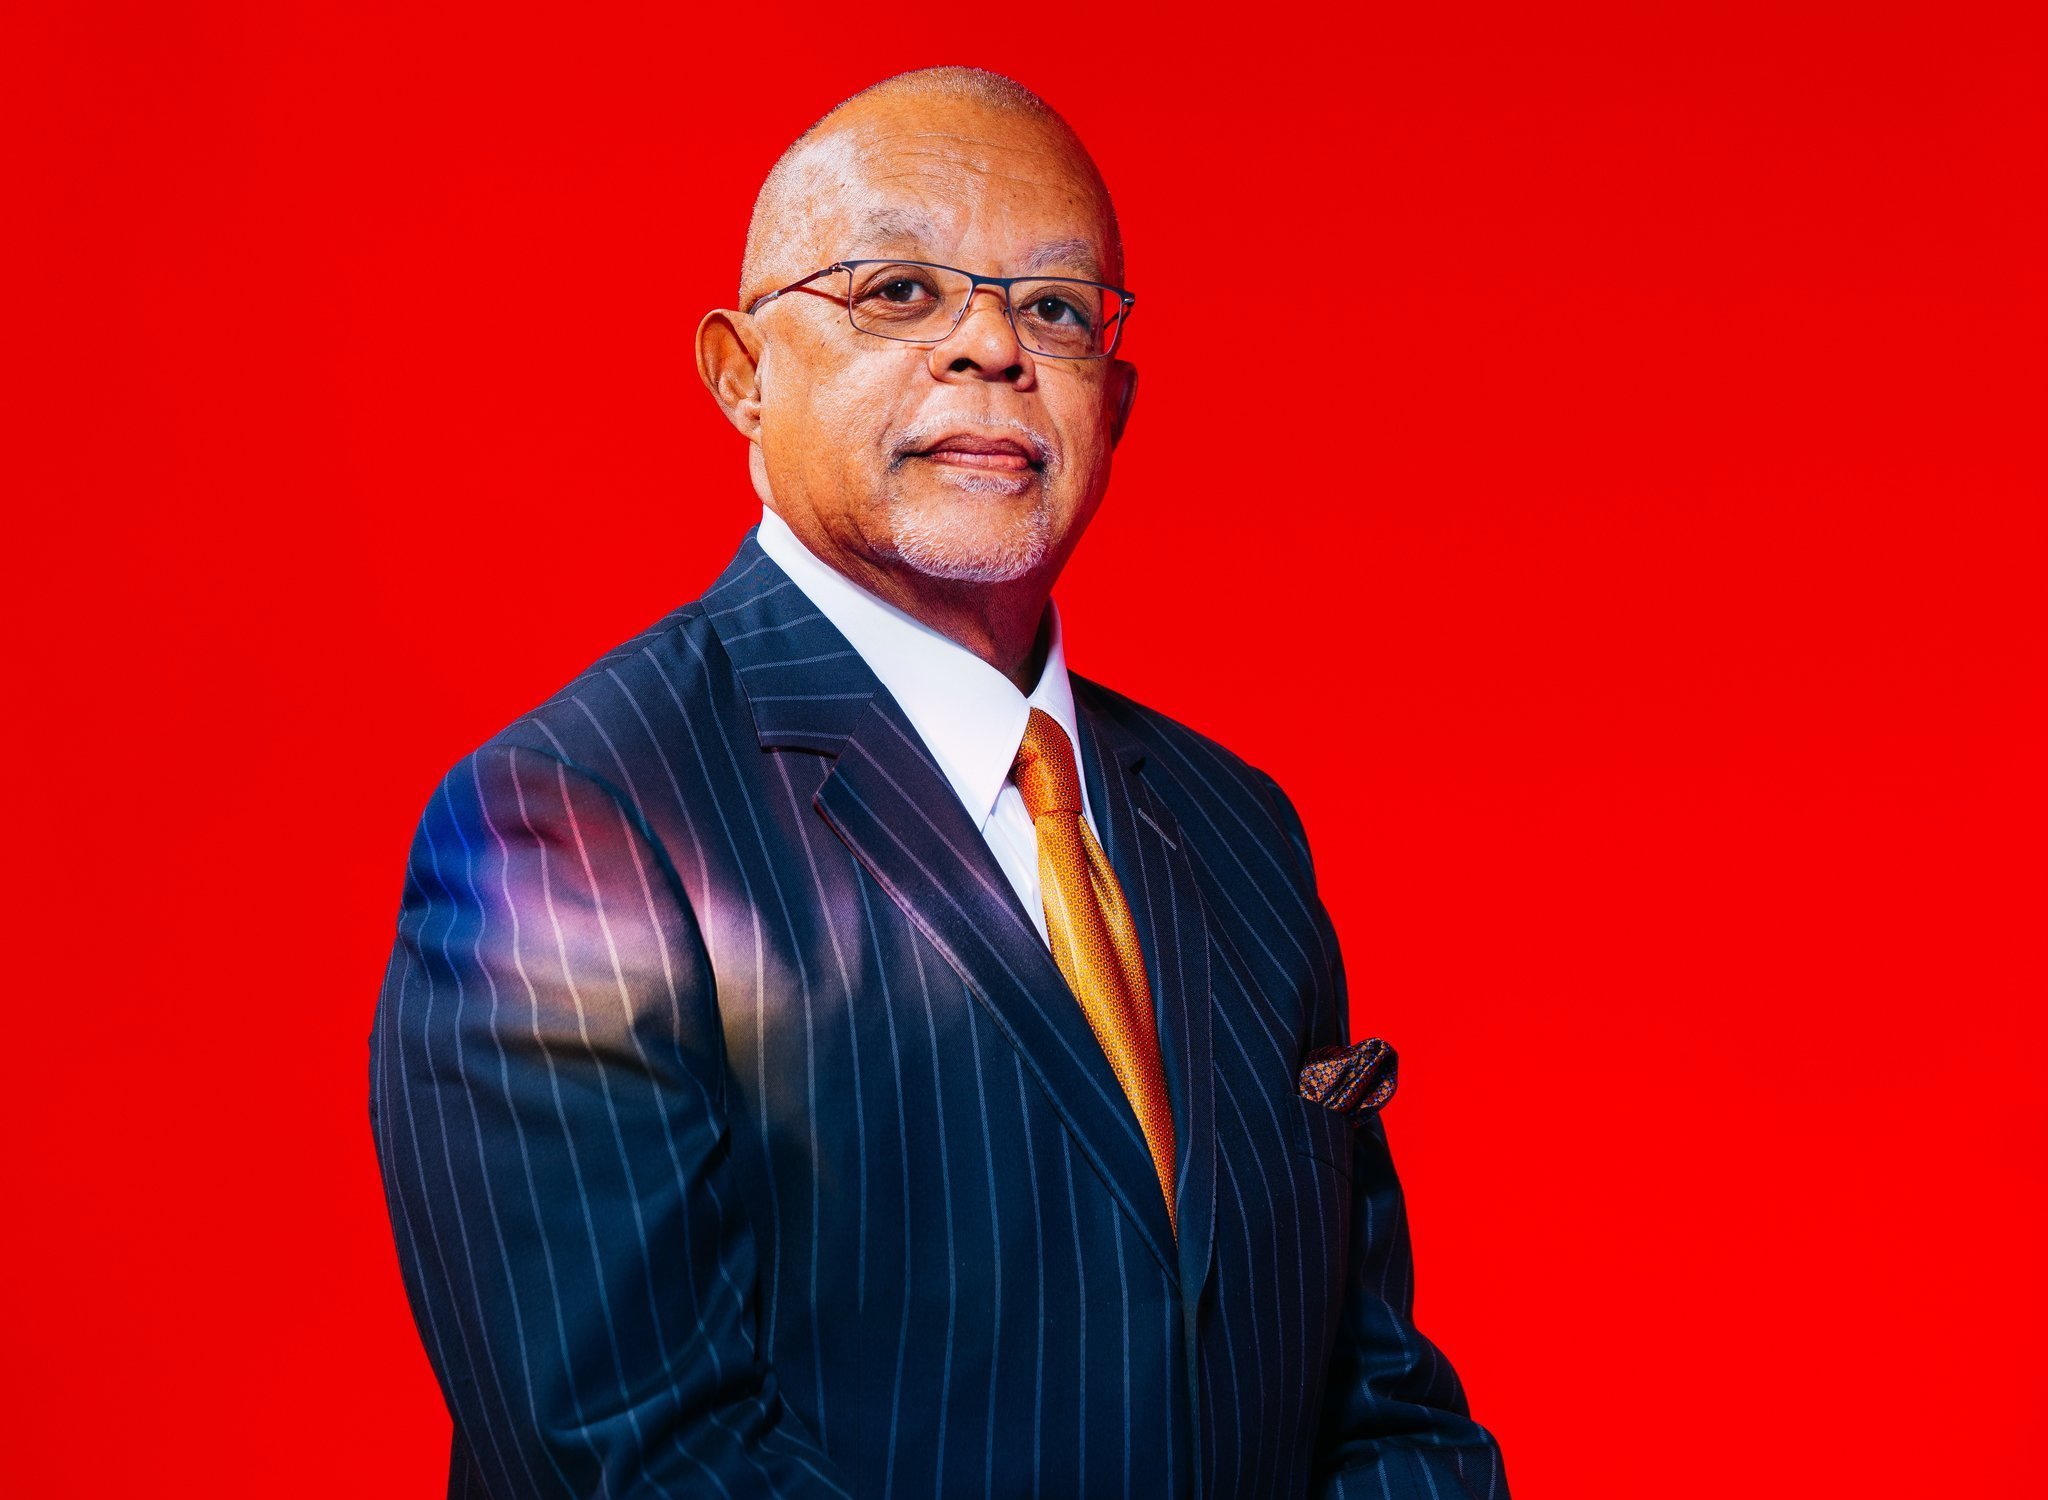 Henry Louis Gates, Henry Louis Gates Jr., African American History, Black History, Beer Summit, Barack Obama, KOLUMN Magazine, KOLUMN, KINDR'D Magazine, KINDR'D, Willoughby Avenue, Wriit,